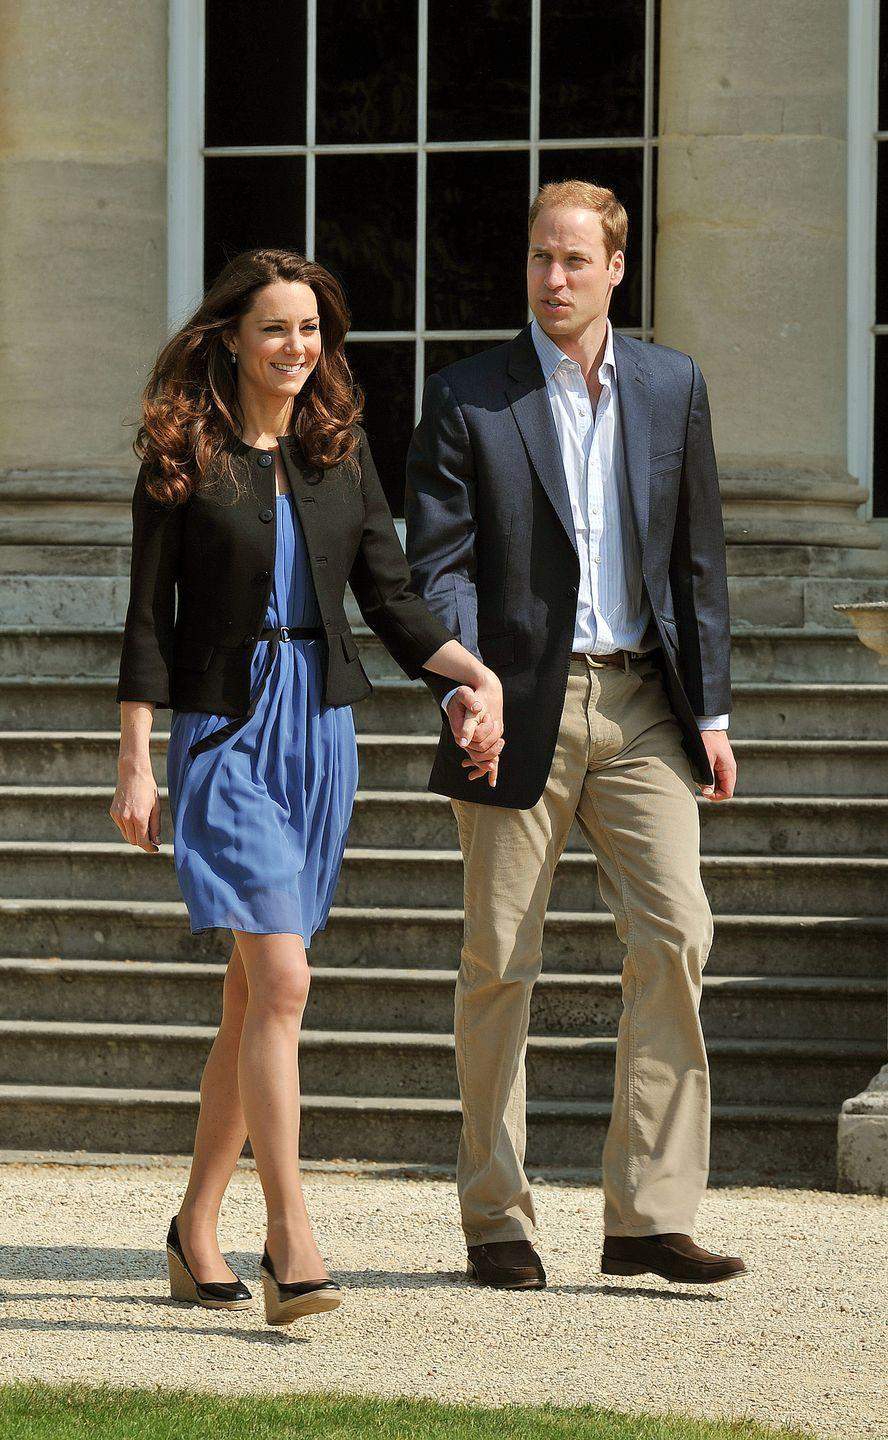 "<p>The younger generations are more relaxed about this royal rule, however the future King and Queen are still very selective about when they choose to hold hands in public.</p><p><strong>RELATED: </strong><a href=""https://www.goodhousekeeping.com/life/relationships/g2440/prince-william-and-duchess-catherine-first-four-years-of-marriage/"" rel=""nofollow noopener"" target=""_blank"" data-ylk=""slk:Kate and William's Relationship Through the Years"" class=""link rapid-noclick-resp"">Kate and William's Relationship Through the Years </a></p>"